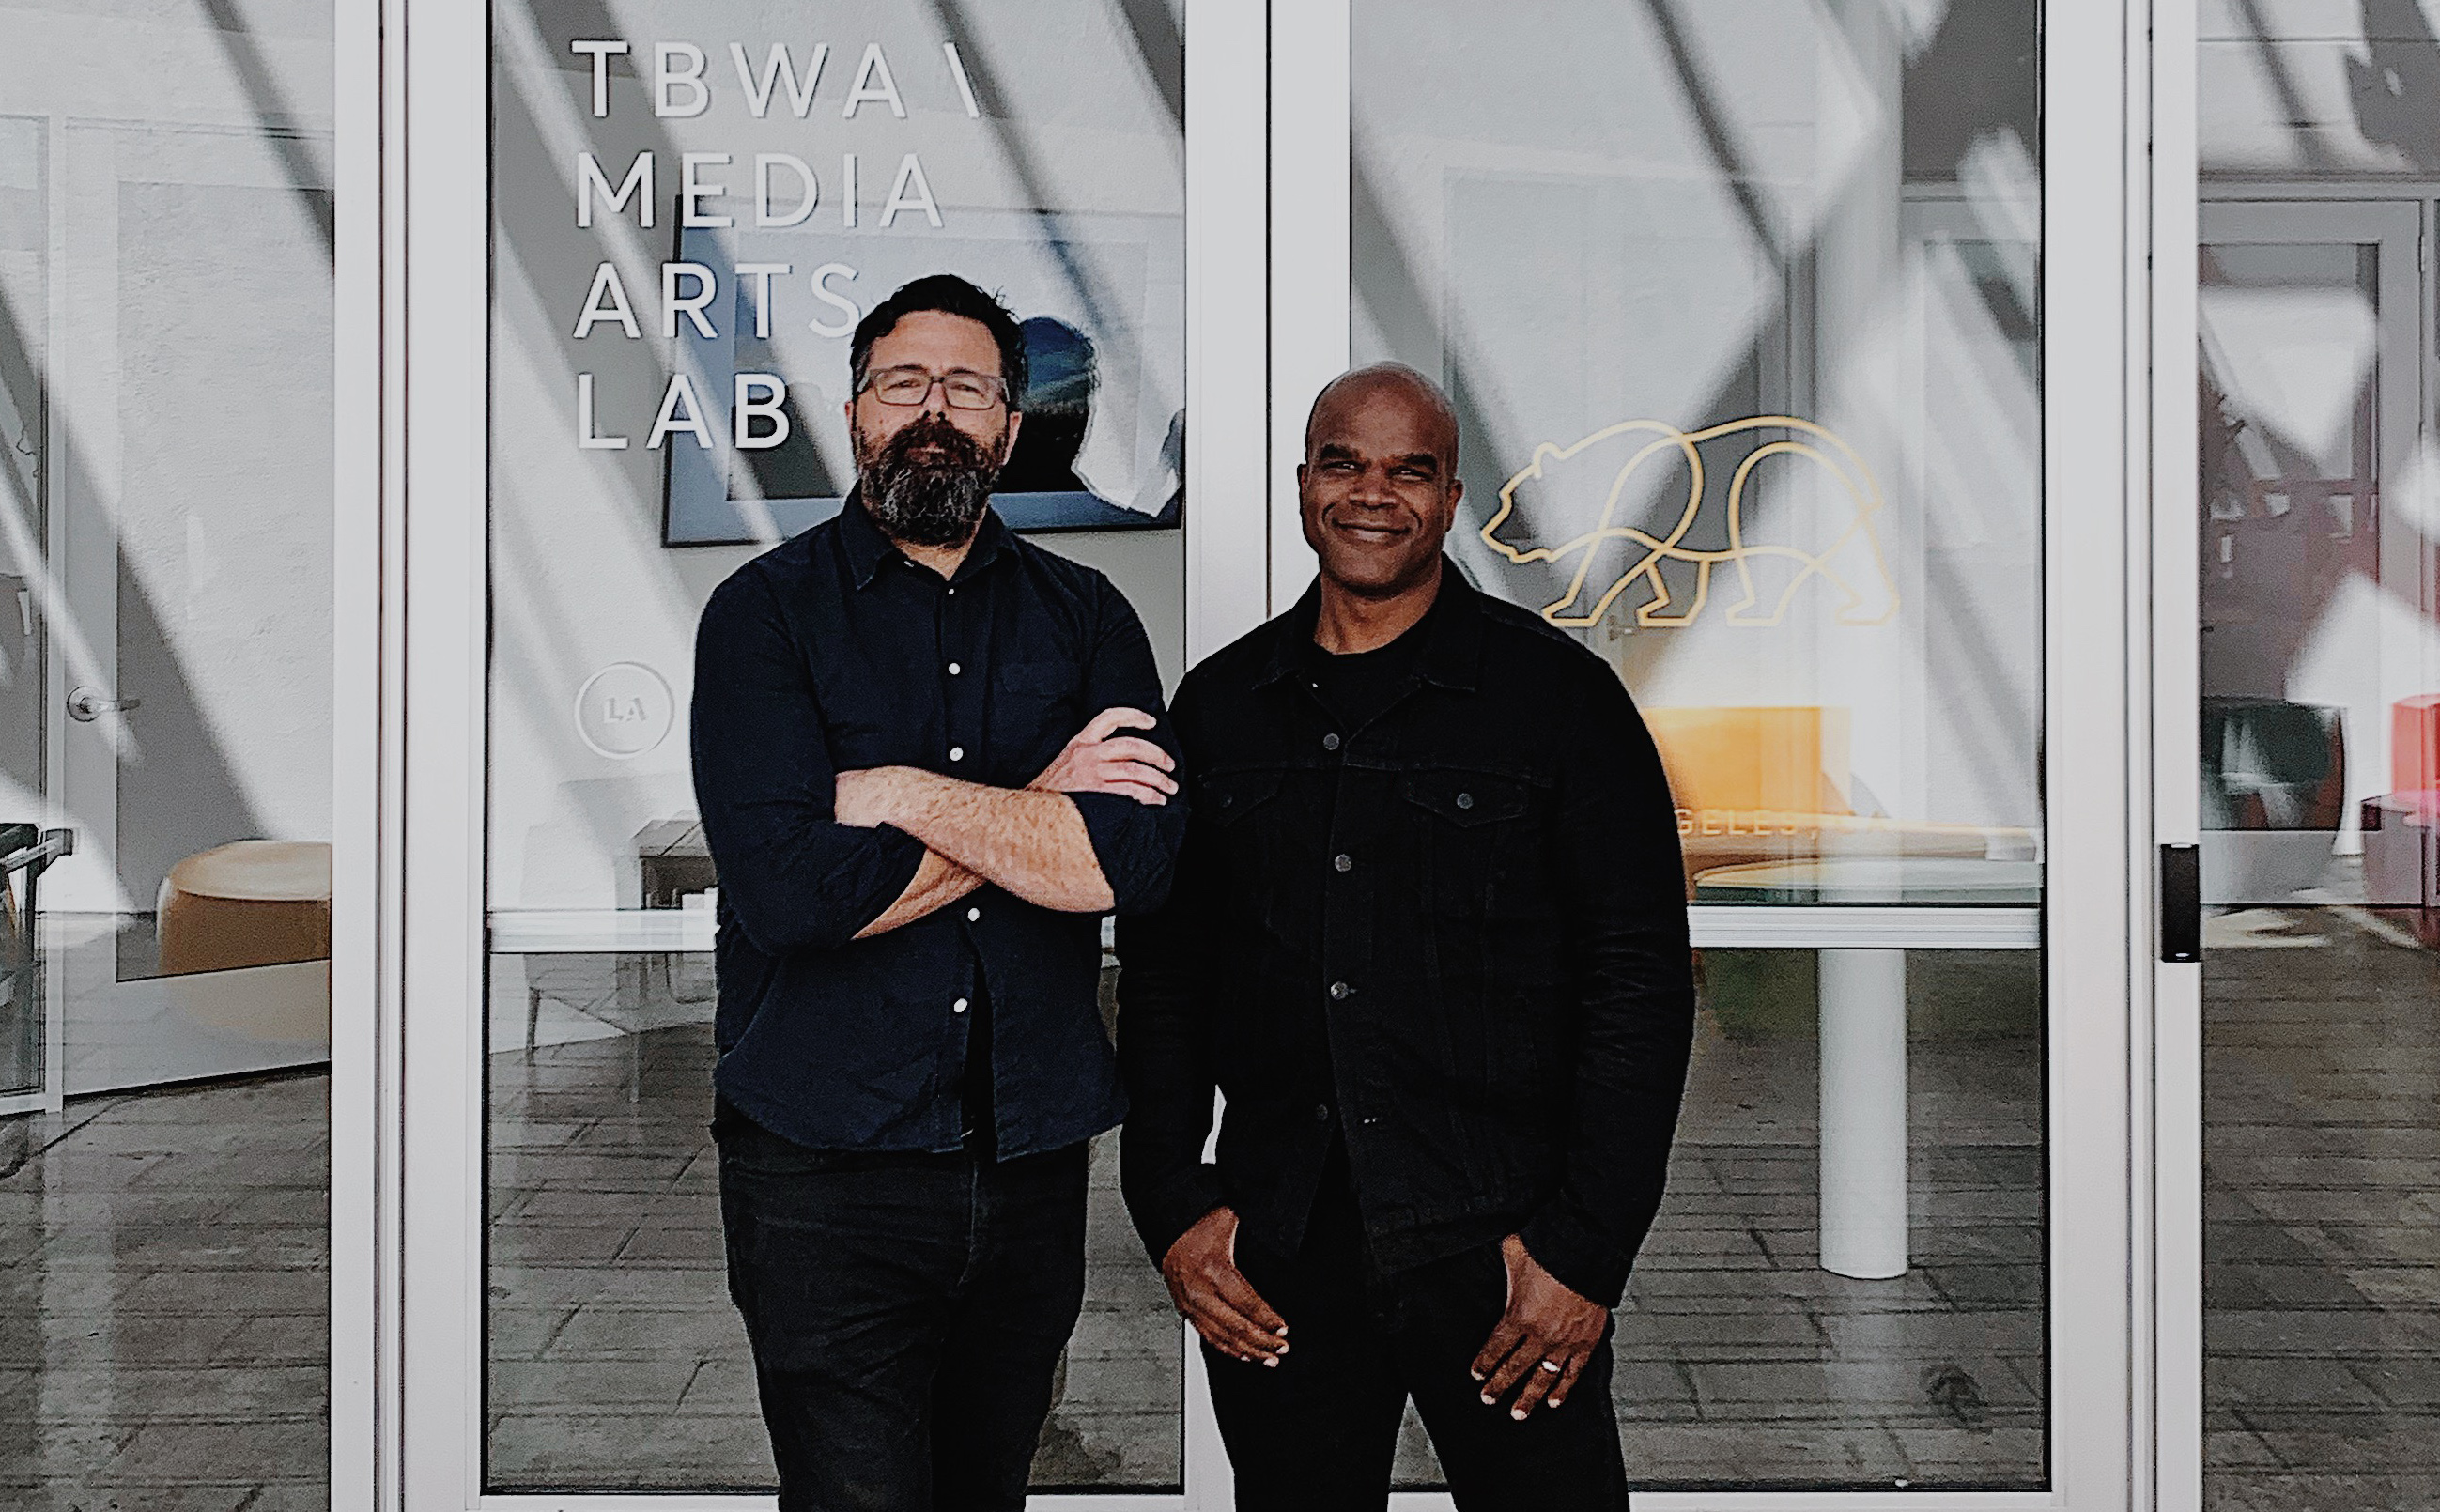 Geoff Edwards returns to TBWA, Christena Pyle heads Time's Up Advertising and Frank Anselmo becomes New York Mets ECD